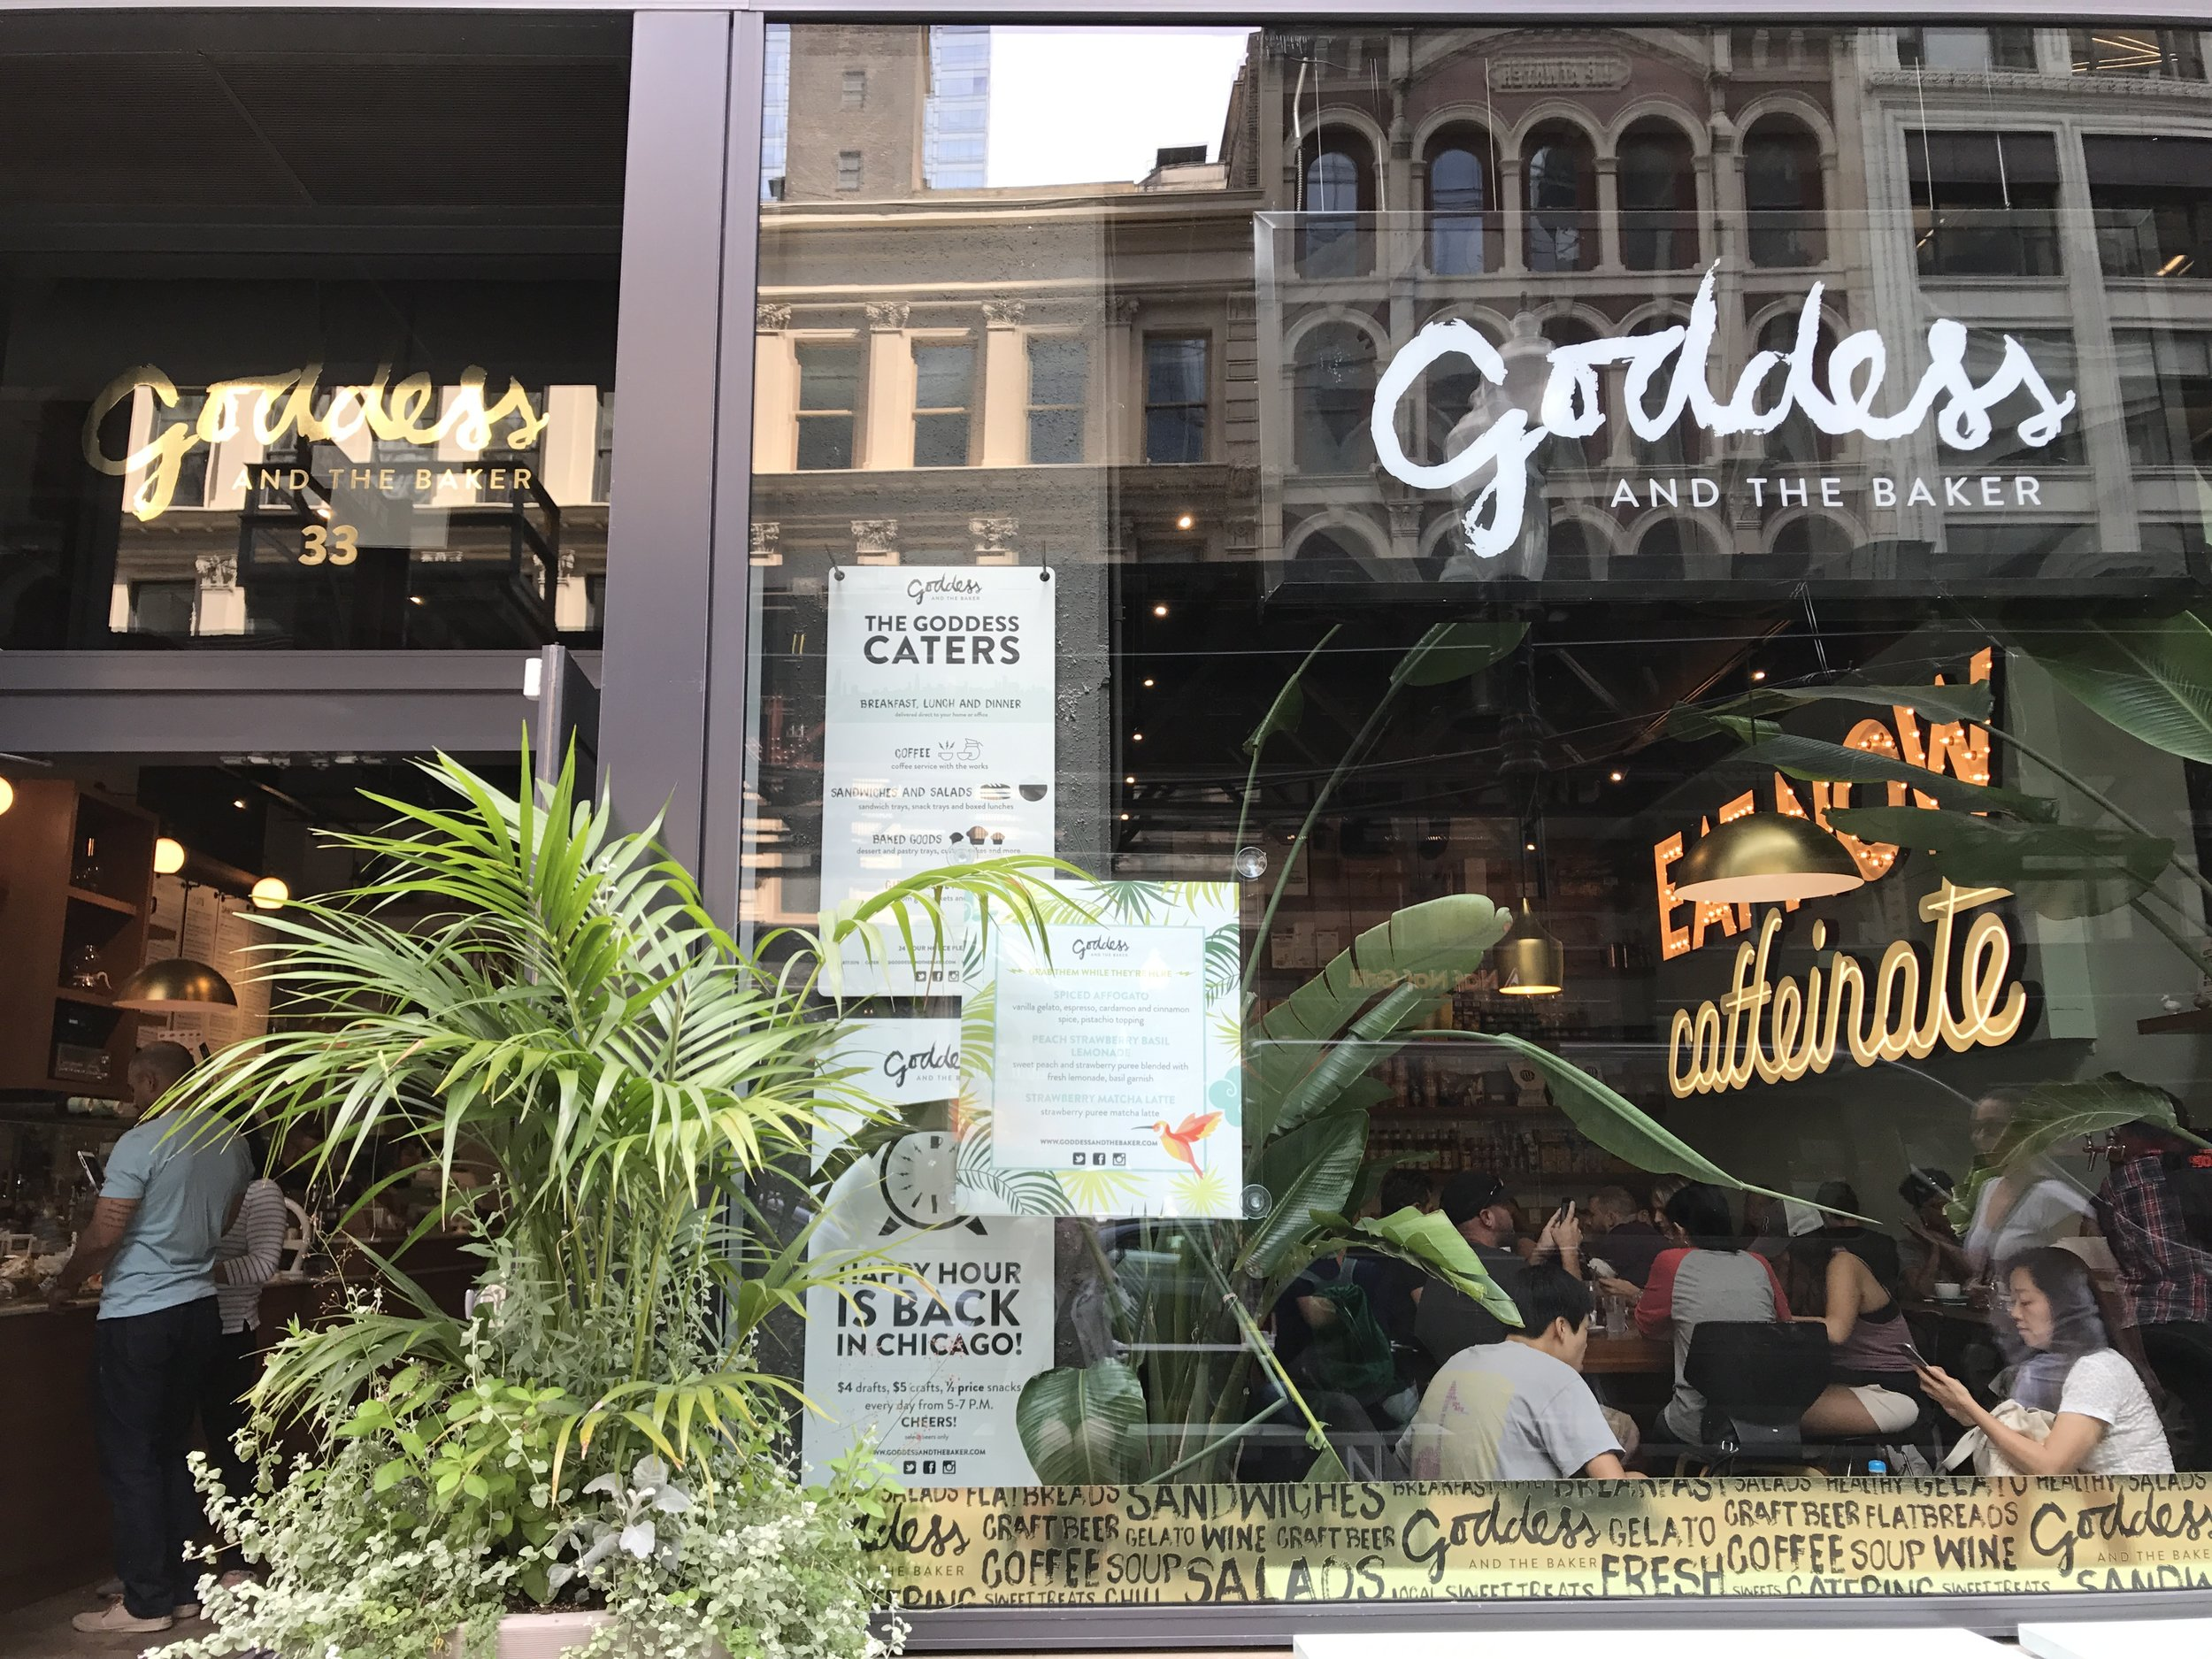 goddess and the baker - chicago travel blog - things to do in chicago